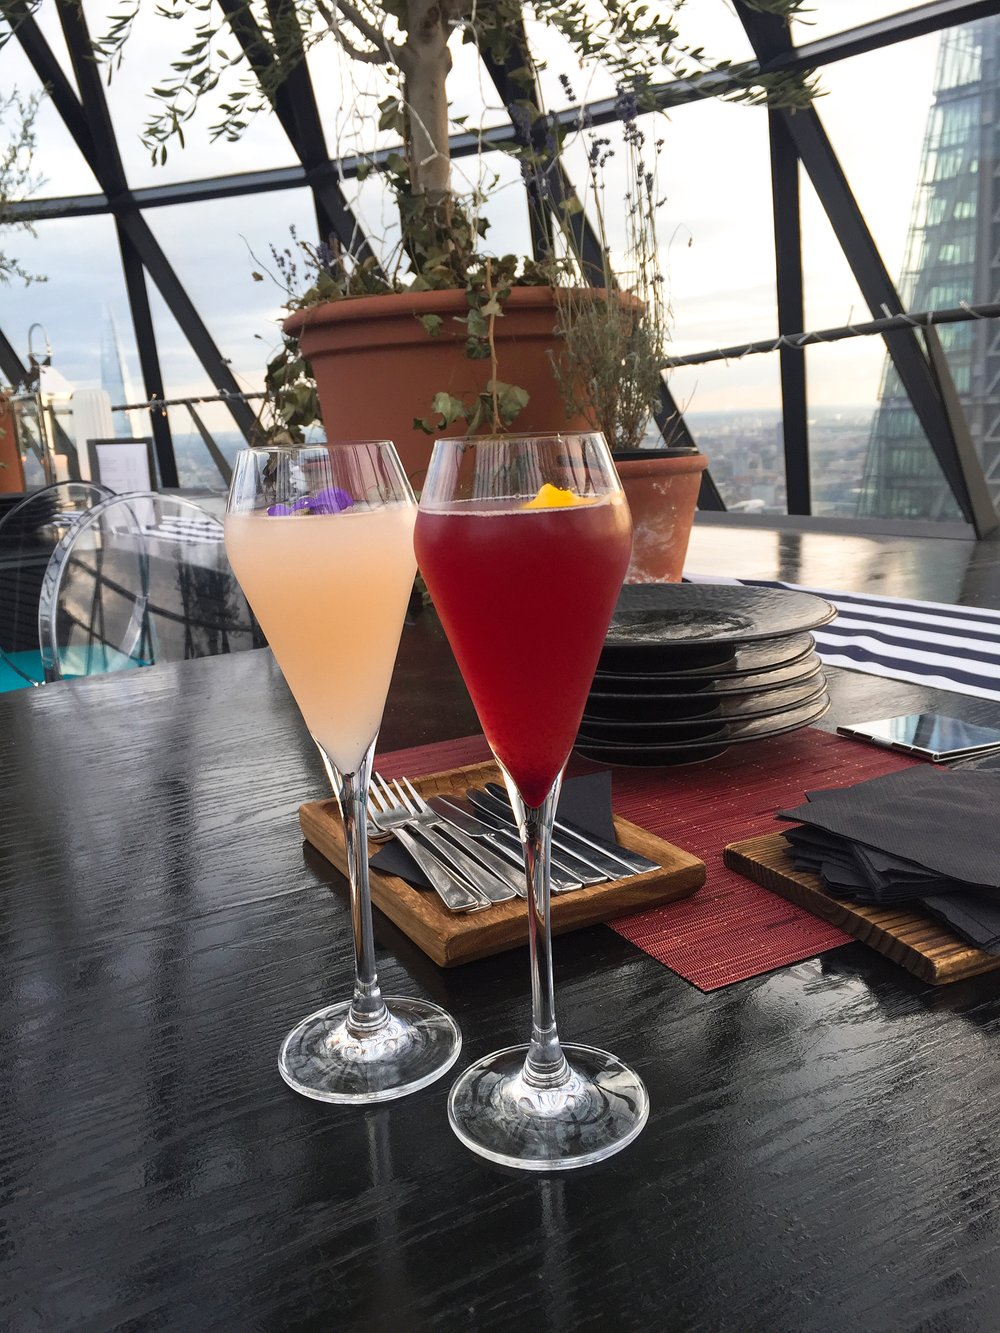 Cocktails - Summer Sky Riviera, Searcys at The Gherkin